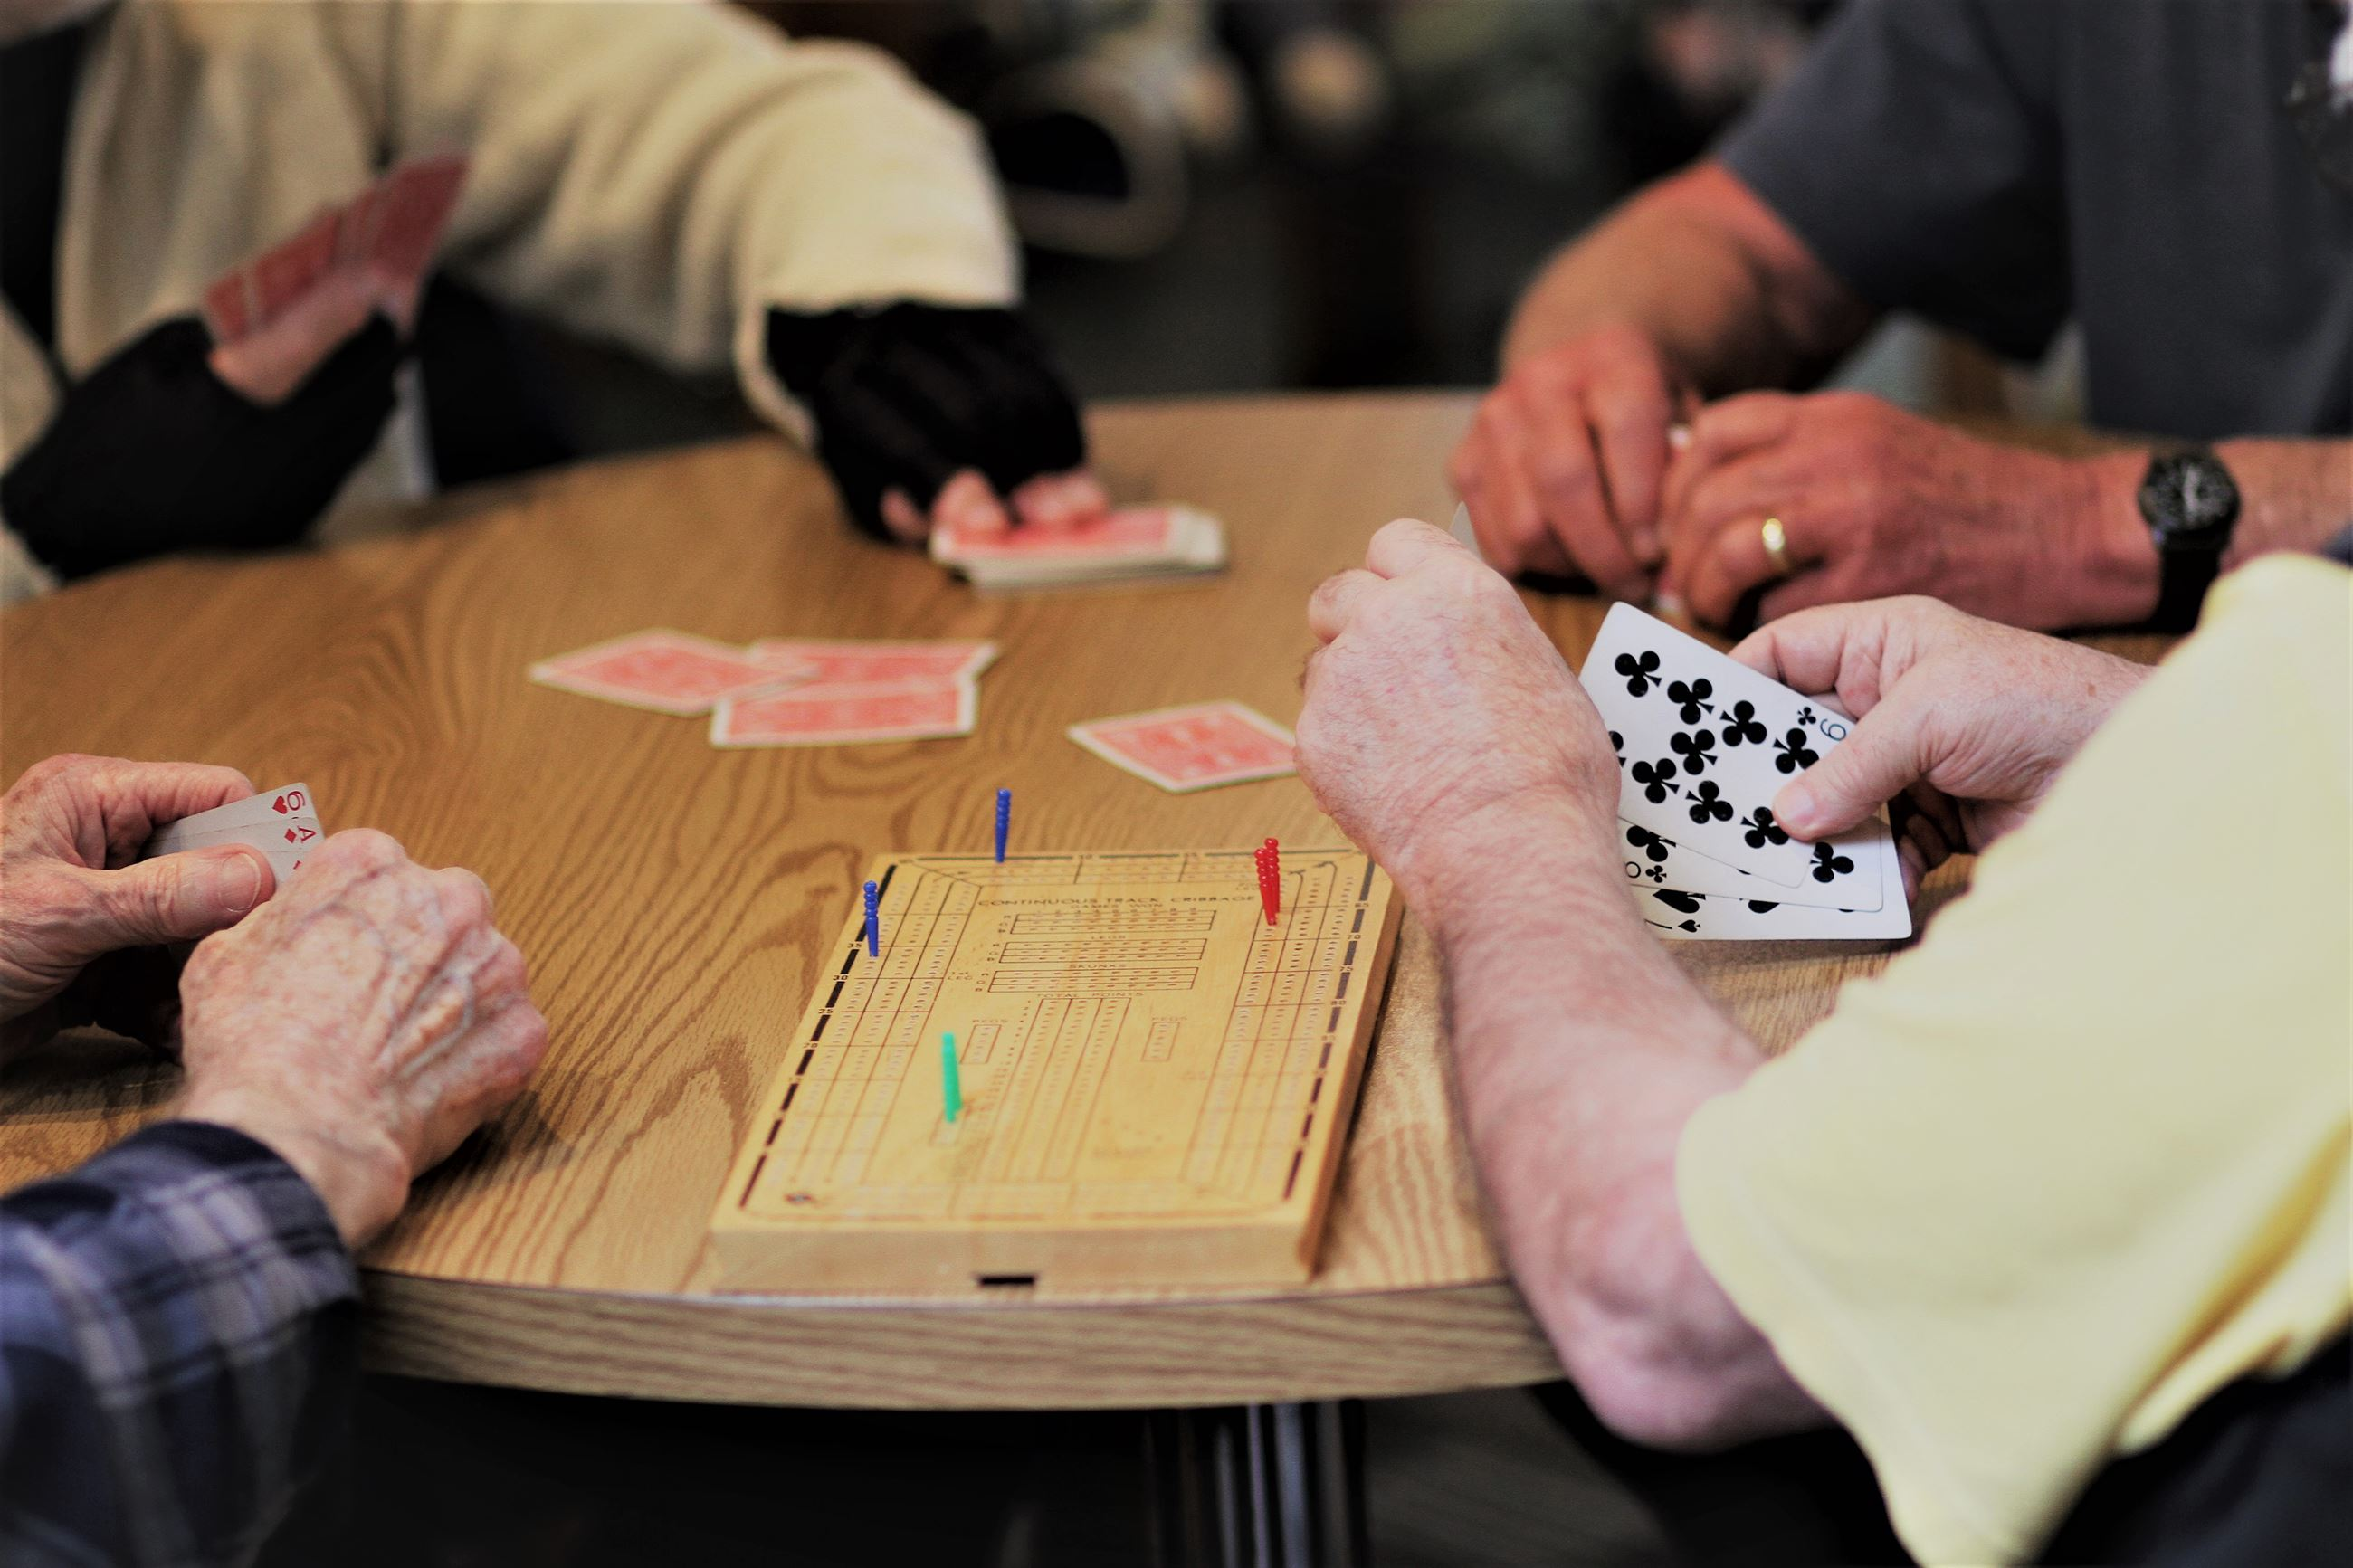 Join us at the Carl Gipson Senior Center for Cribbage